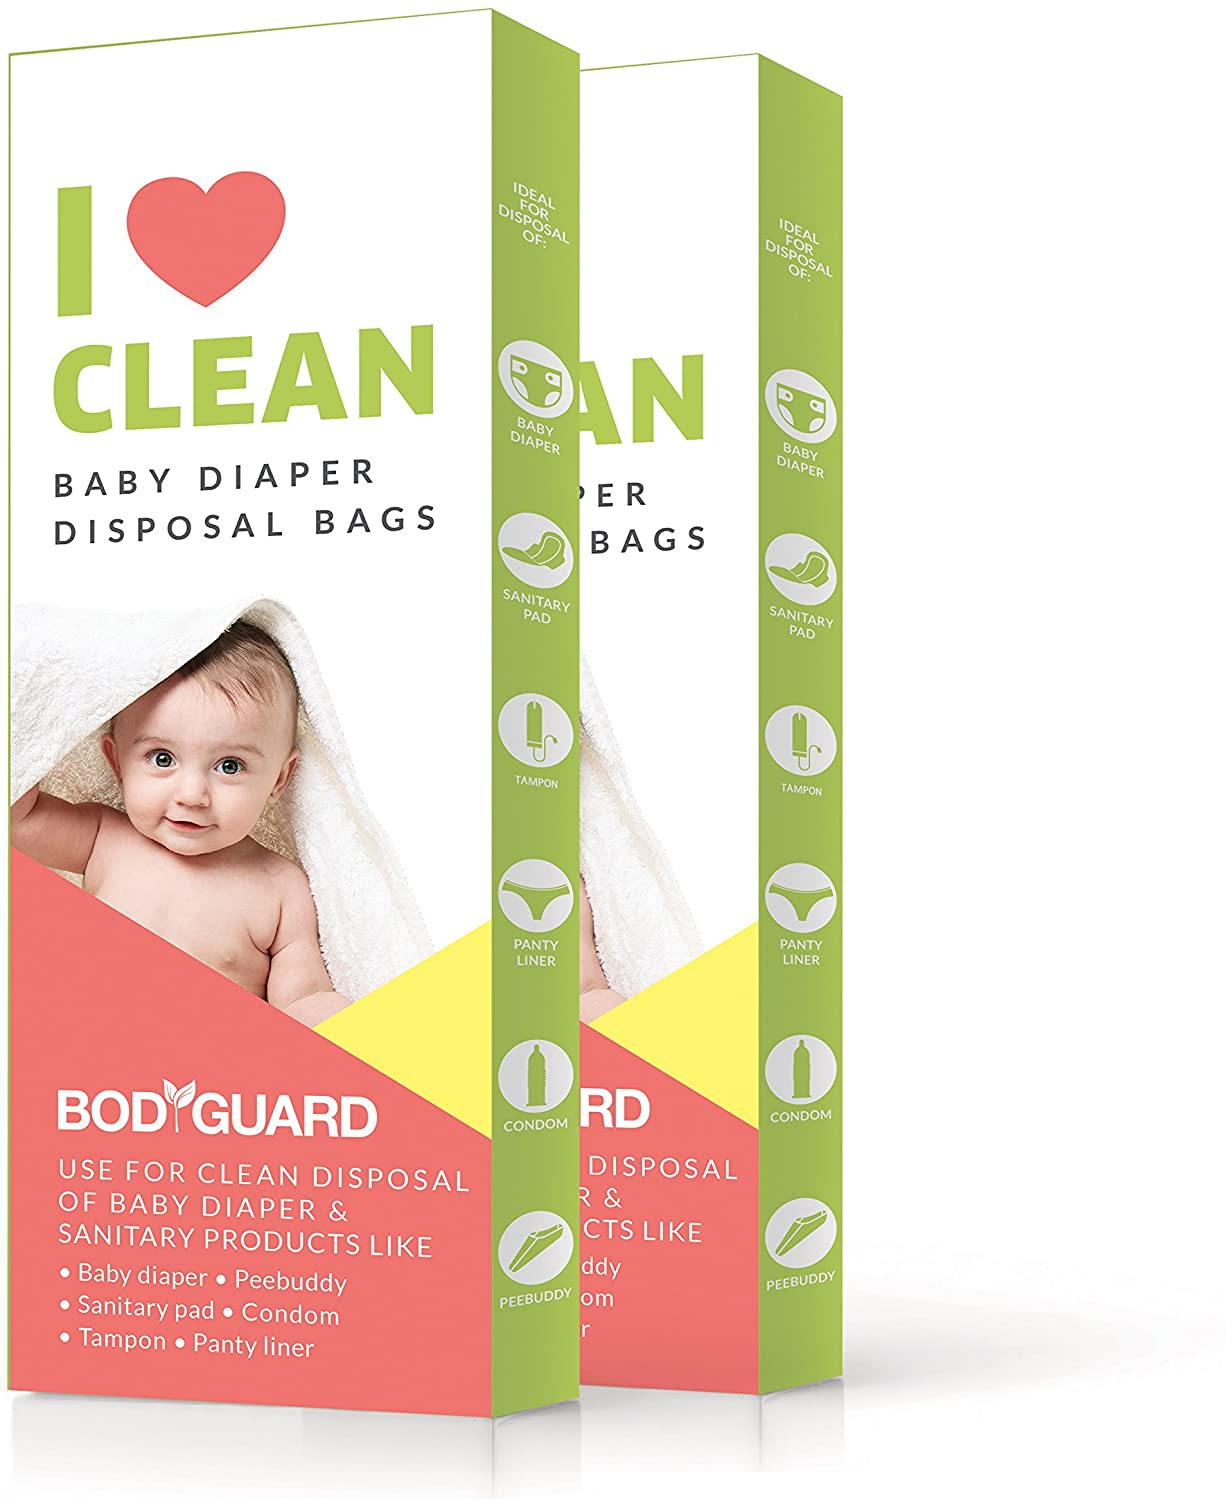 Bodyguard Baby Diaper Disposable Bags - 30 Bags | Odor Sealing for Diapers, Food Waste, Pet Waste, Sanitary Product Disposal | Durable and Unscented